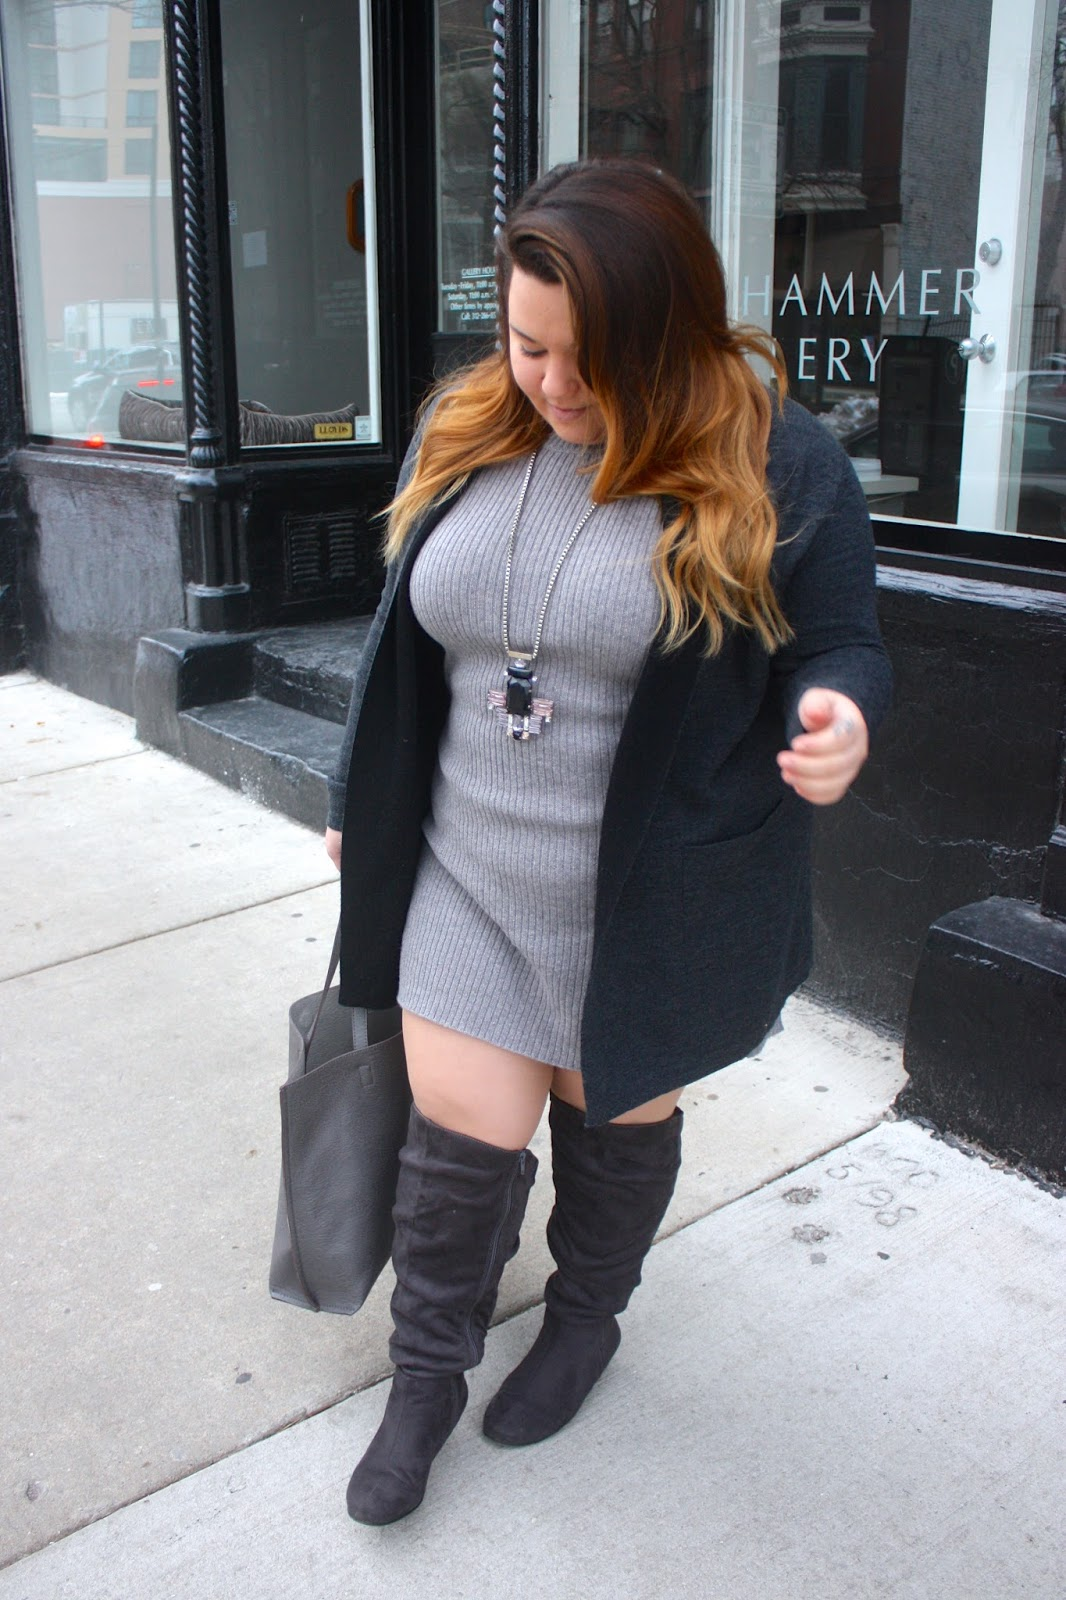 natalie craig, natalie in the city, street level tote, knee high boots, plus size, fashion blogger, chicago, new year, monochromatic outfit, how to wear statement jewelry, duster cardigan, sweater weather, winter outfits 2016, curvy, fashion, wide calf boots, balayage hair, sweater dress